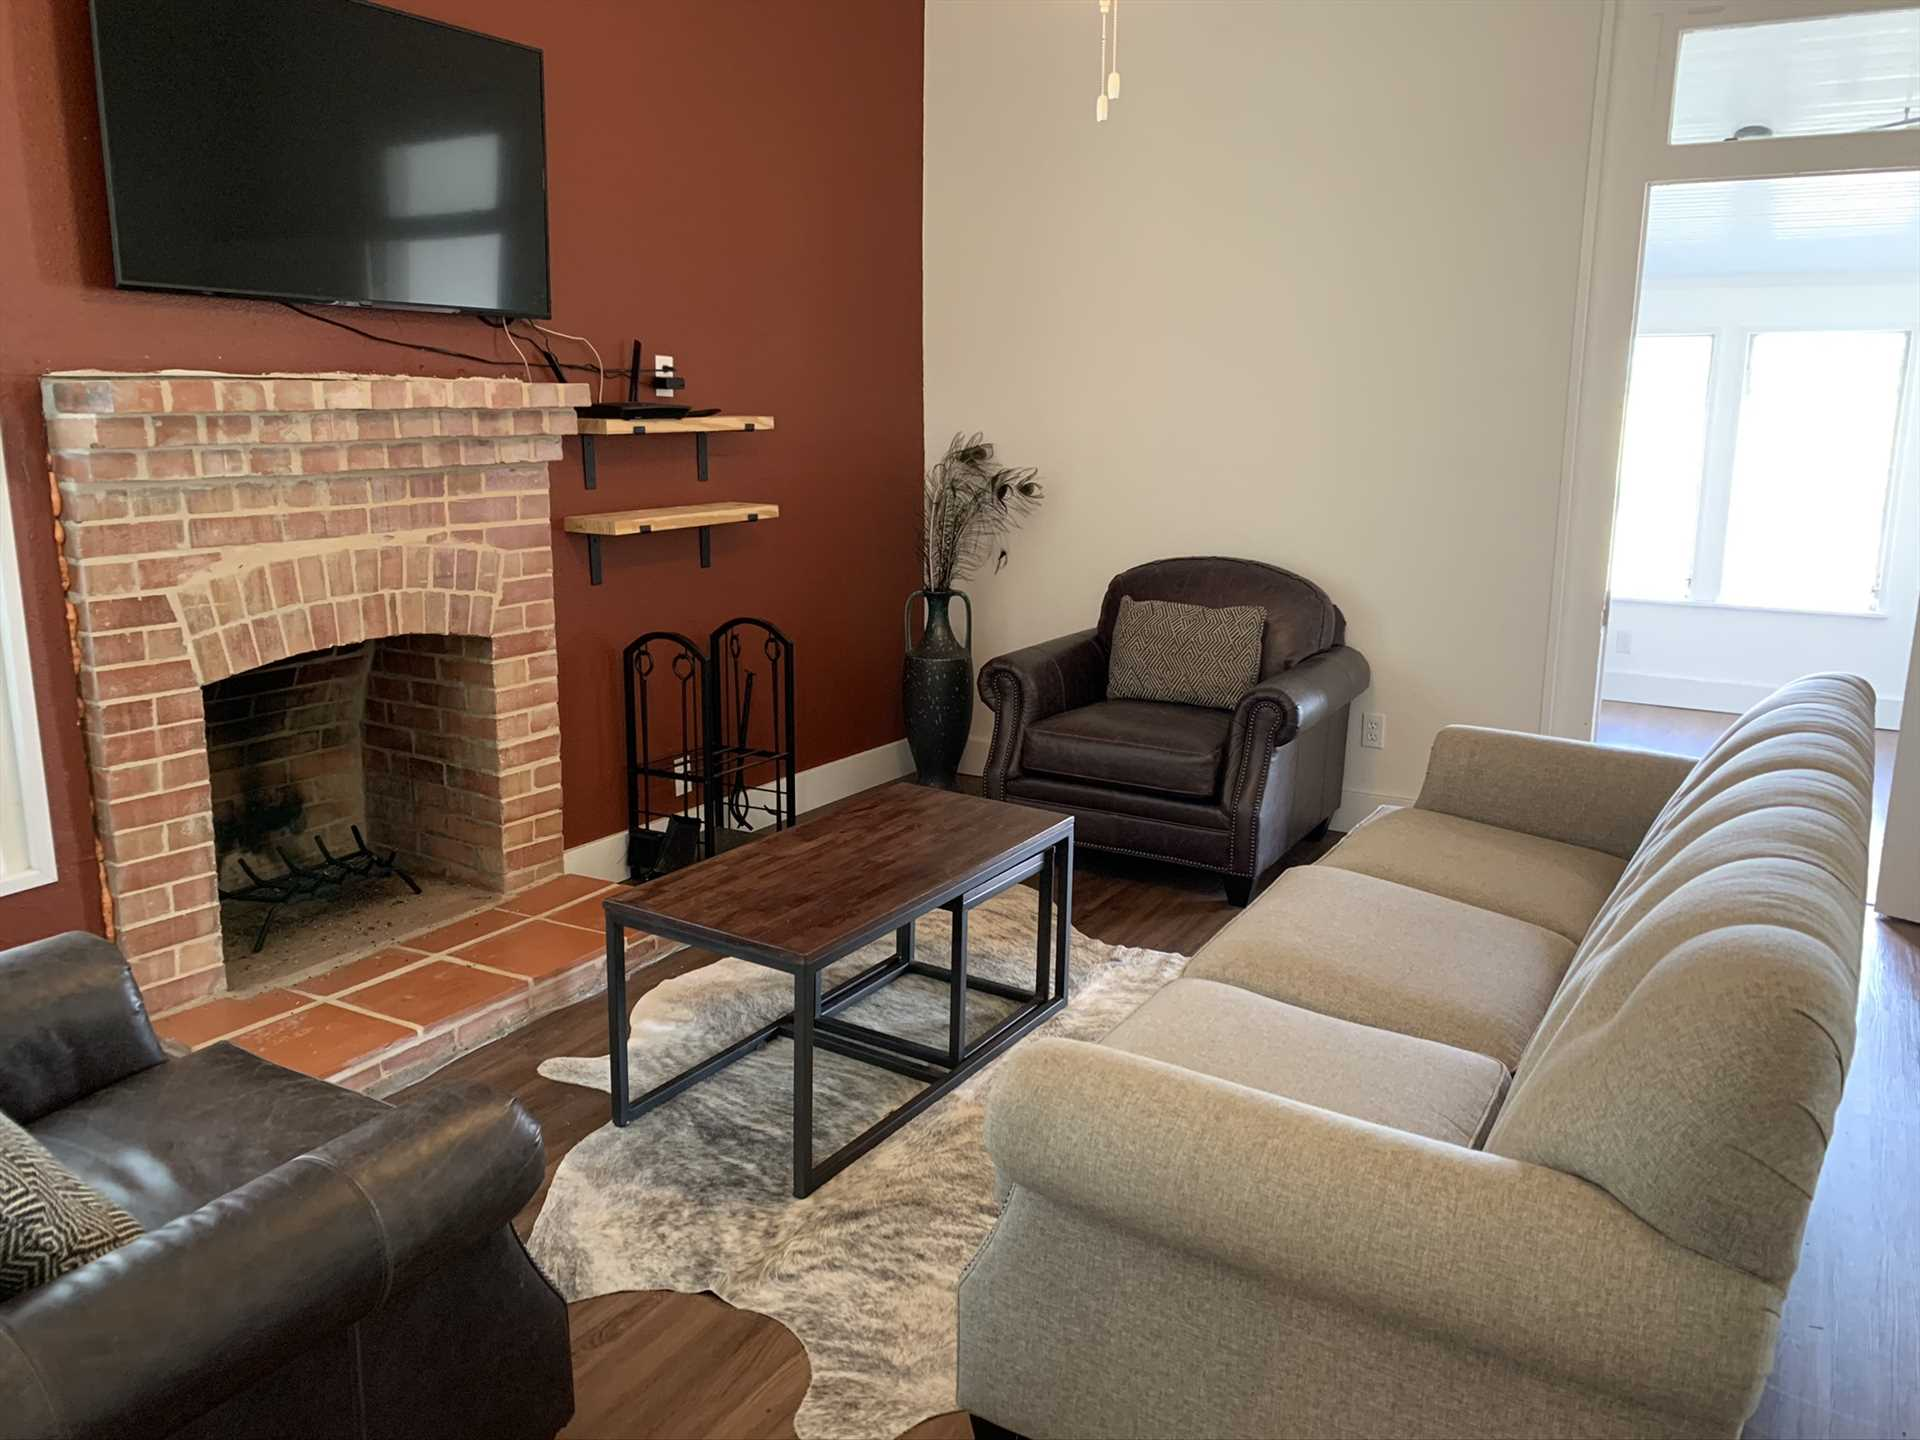 Wifi and the Roku-enhanced TV will keep your crew entertained in the comfy living area, and the electric fireplace will keep chilly nights at bay.